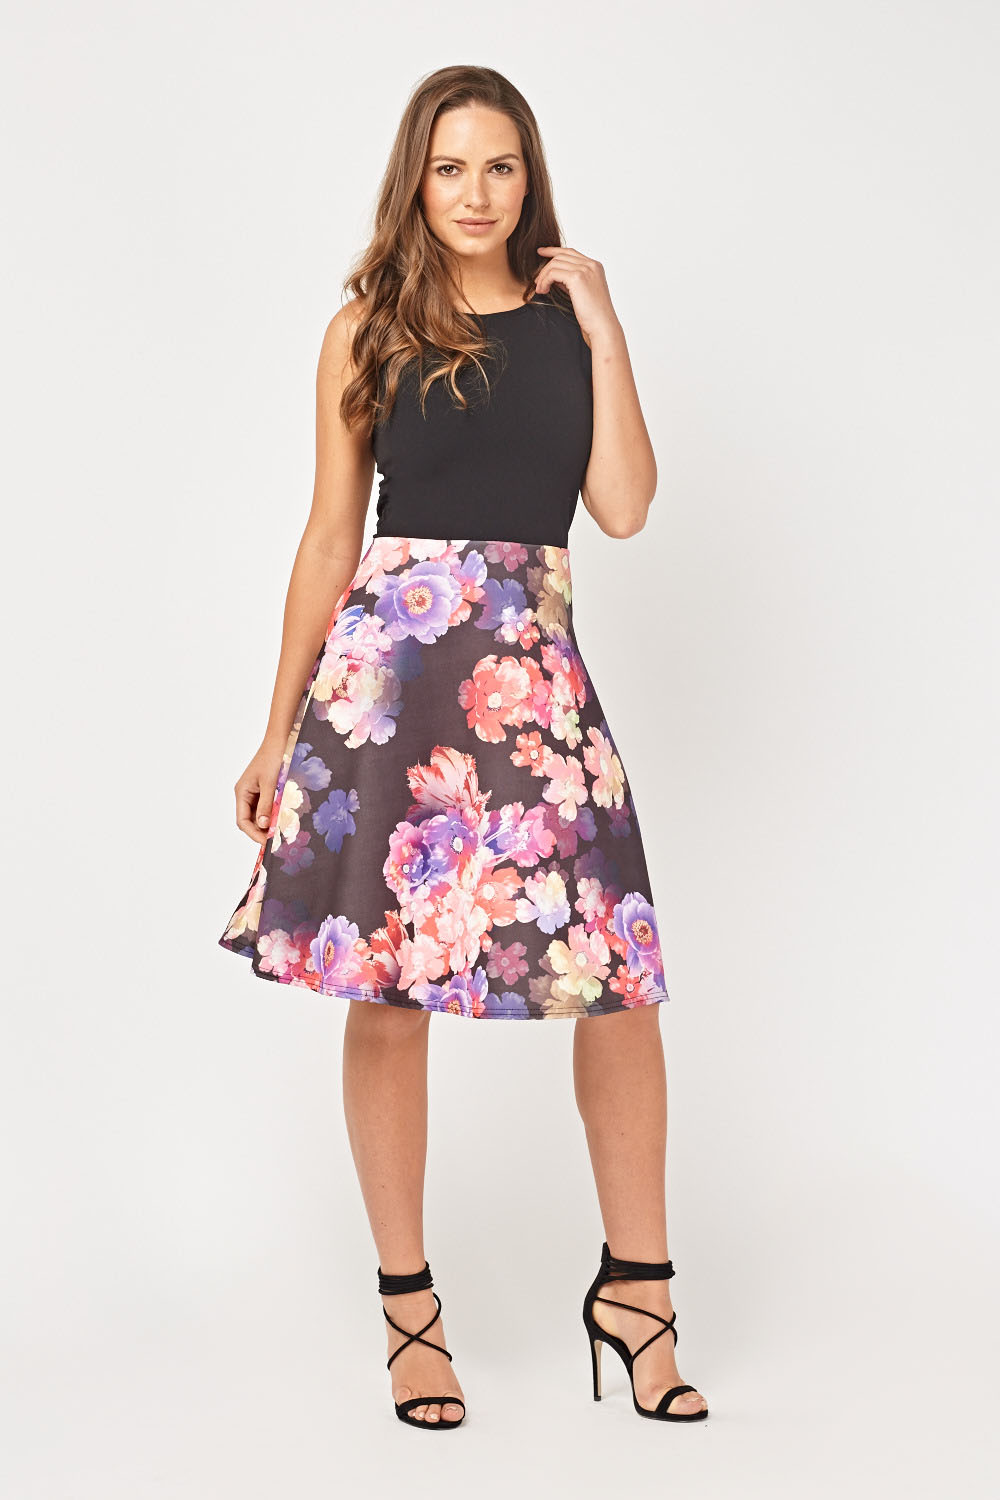 ff0de6f35623 Contrasted Floral Midi Swing Dress - Just £5